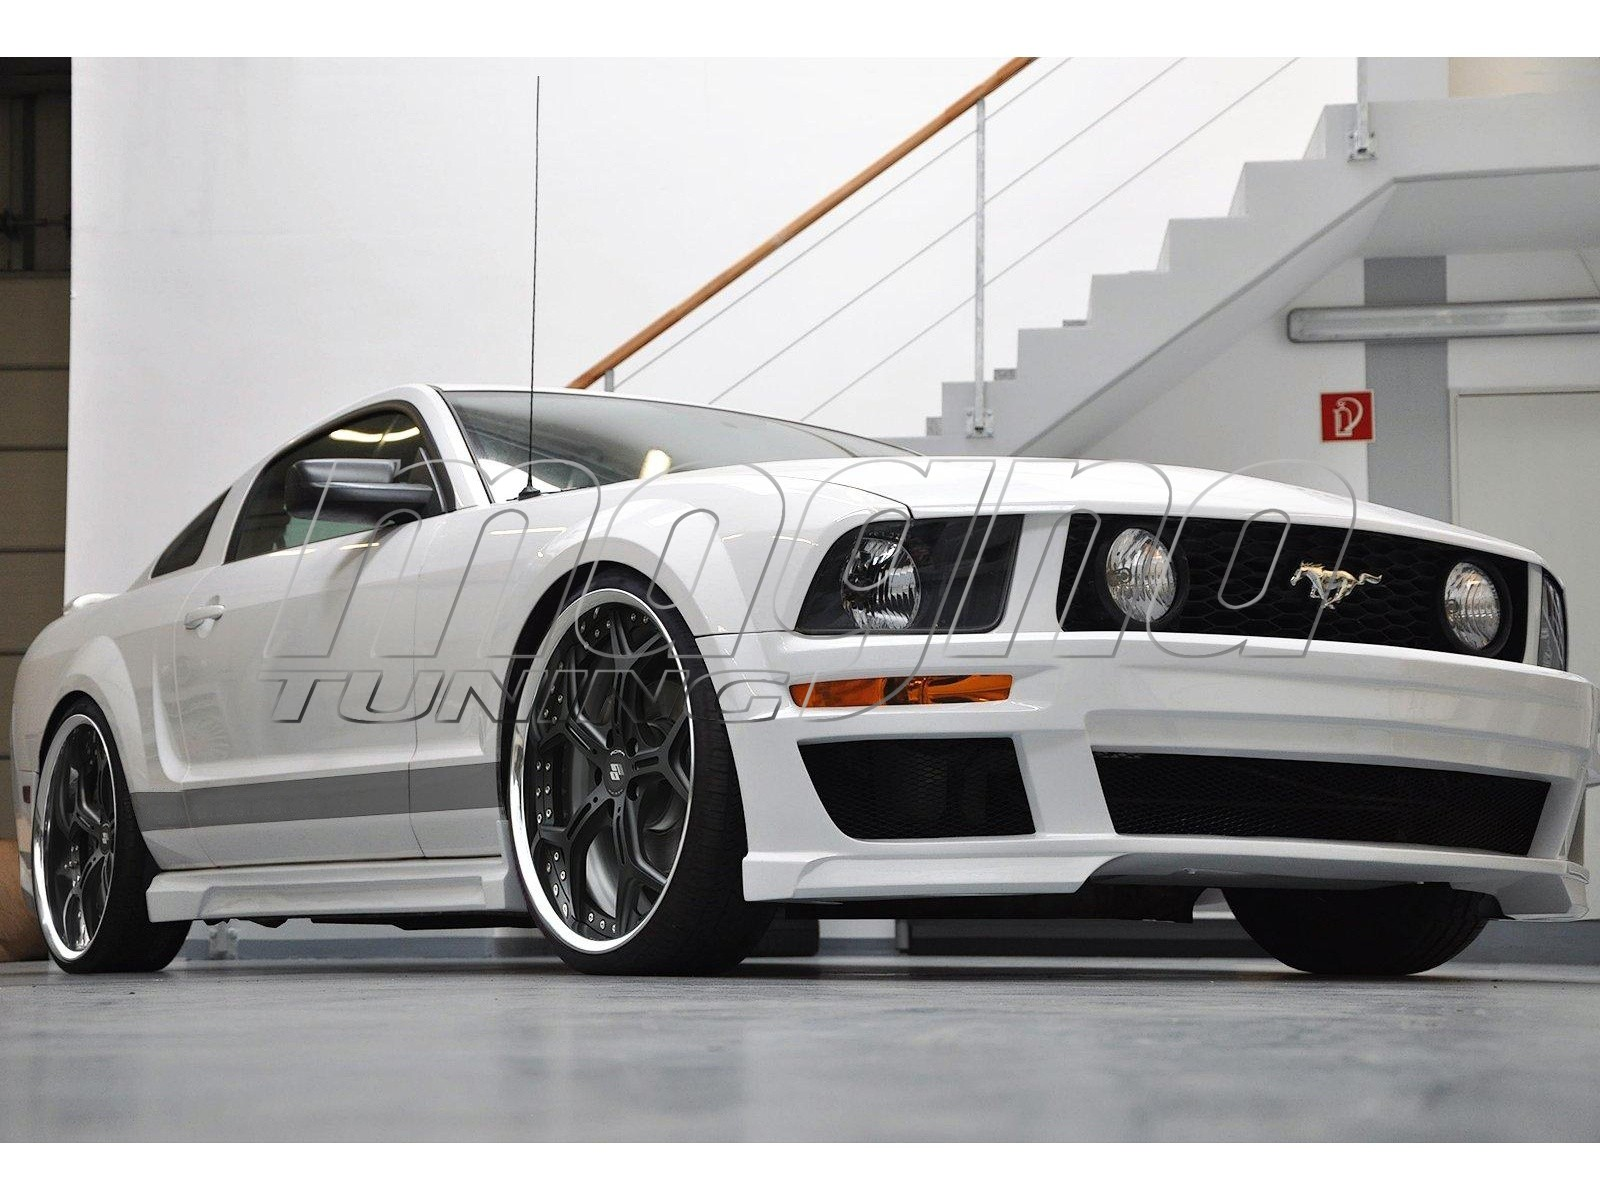 Ford Mustang Exclusive Body Kit HD Wallpapers Download free images and photos [musssic.tk]